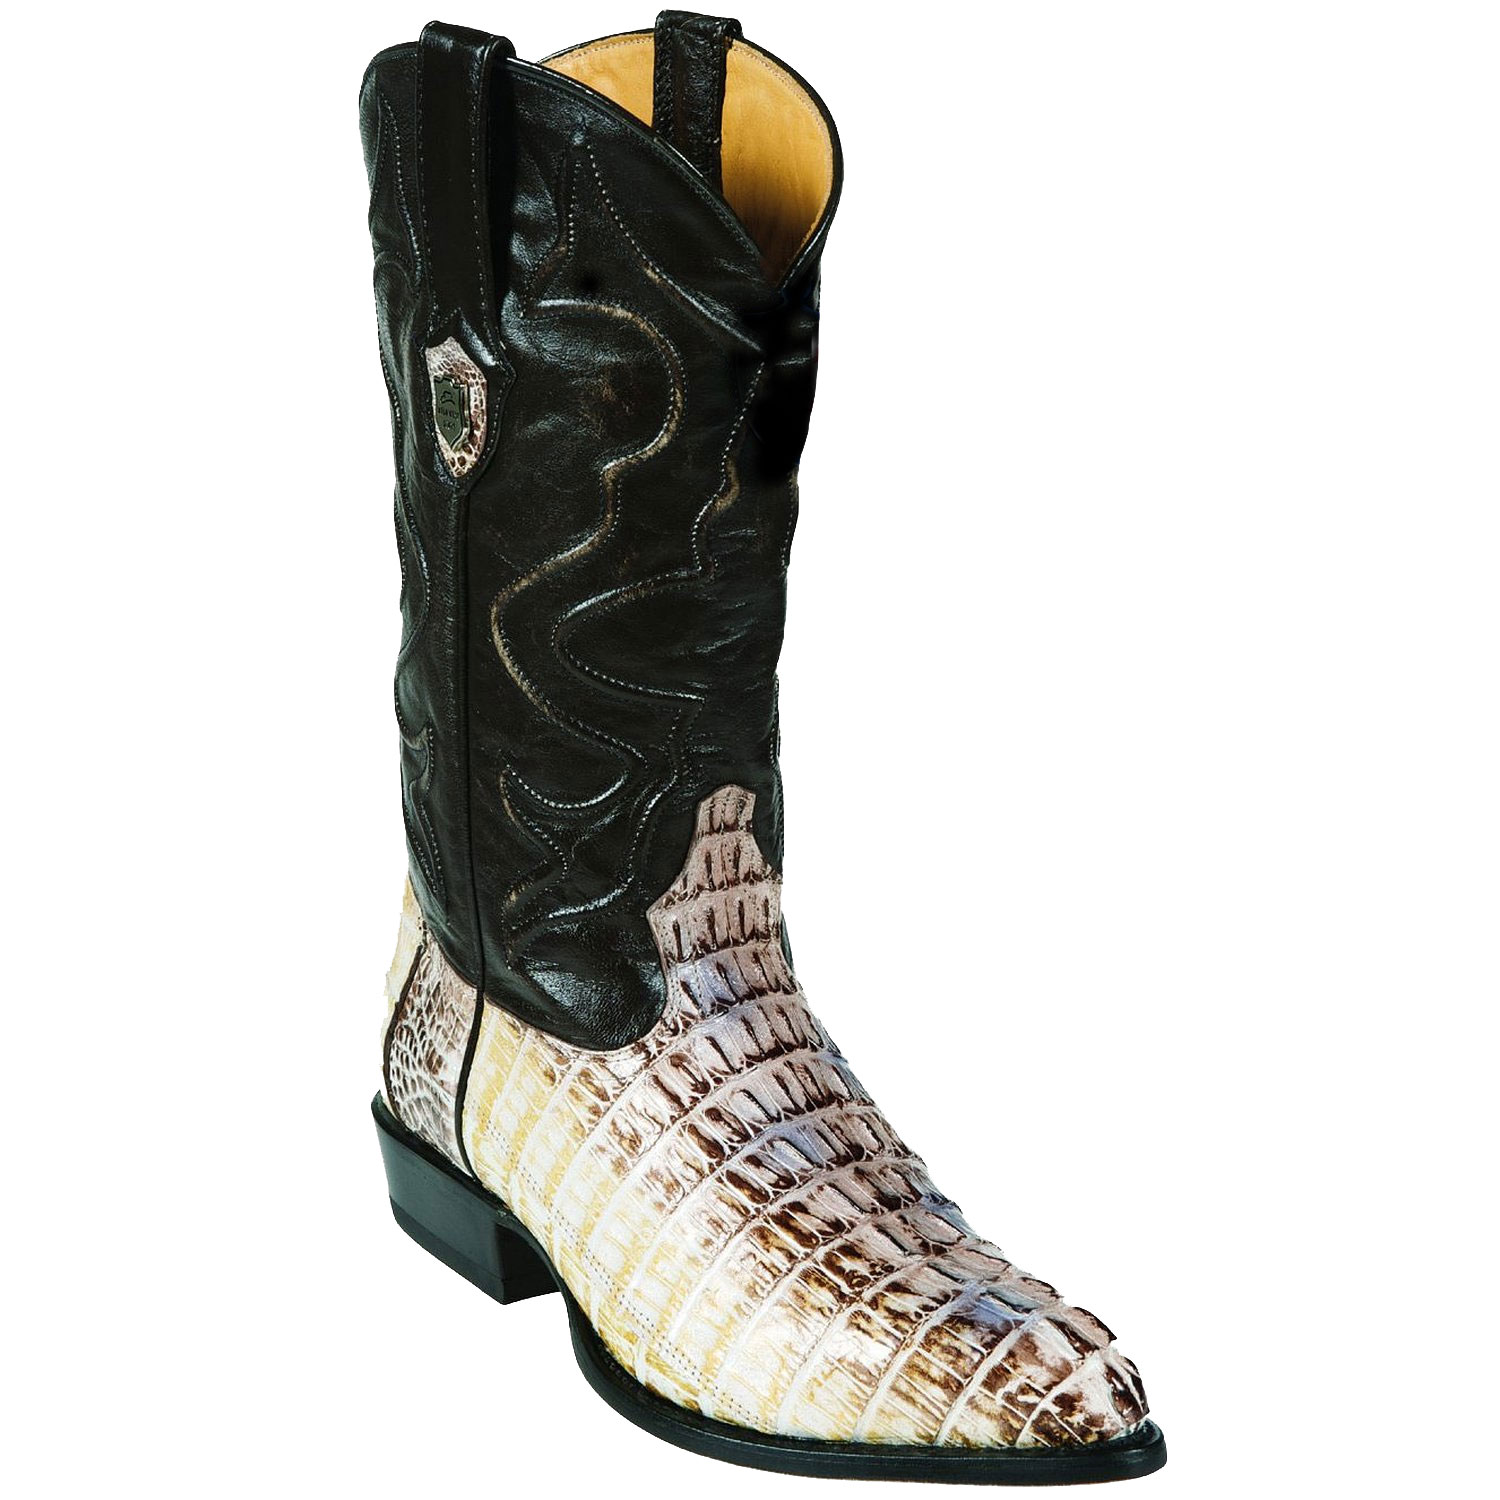 West J-Toe Natural caiman